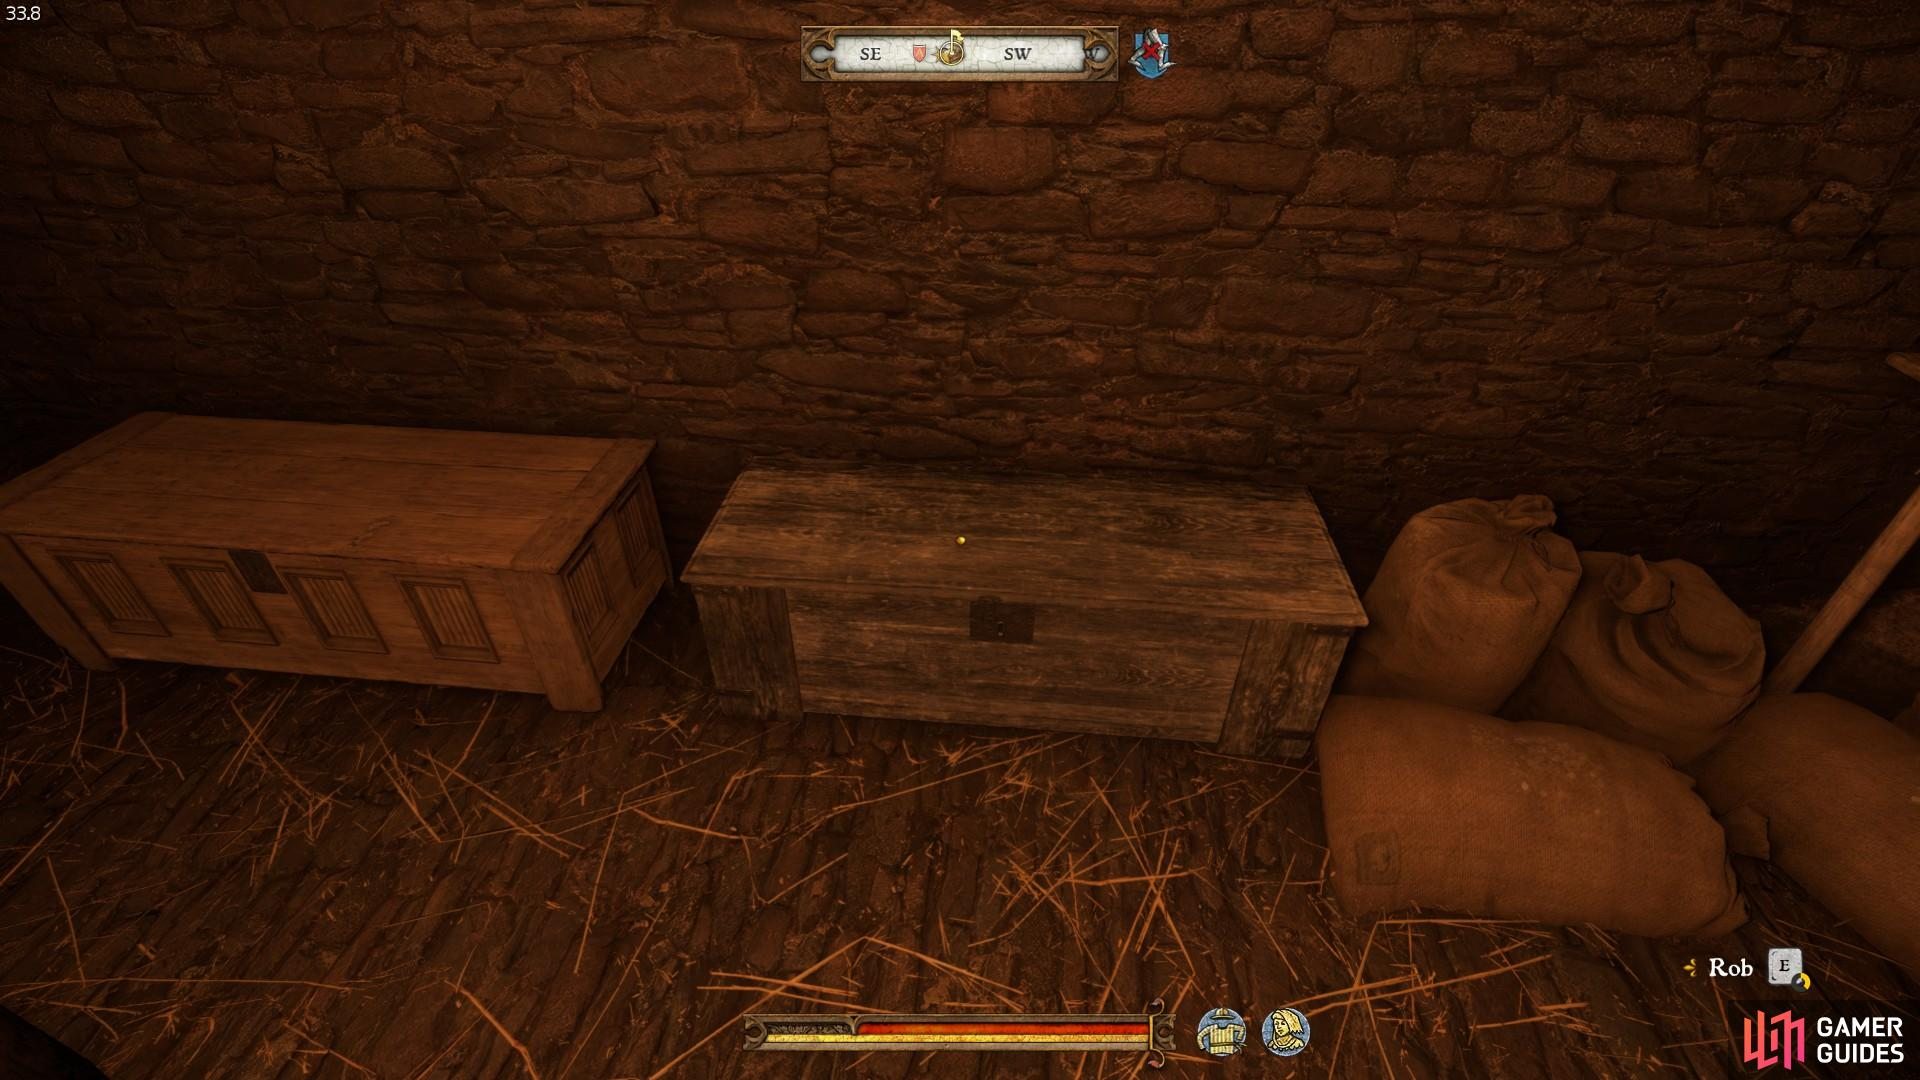 The chest with the waffenrocks in is the one to the right of the grain sacks. You will need to be able to pick hard locks to open it.